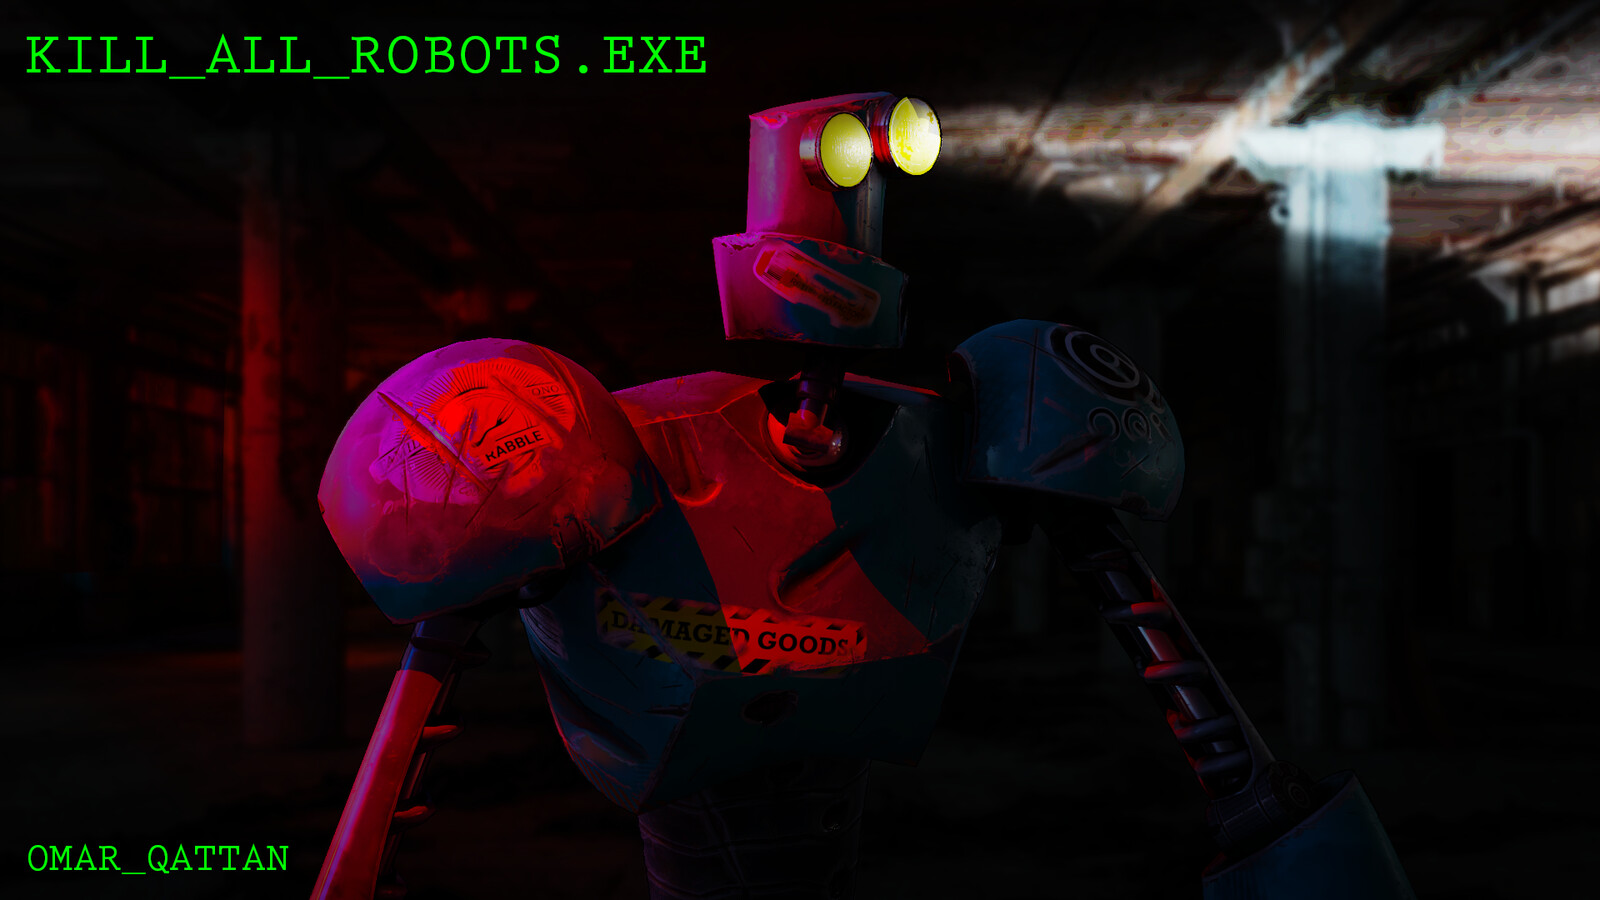 Kill_All_Robots.exe main character render w/photoshop background